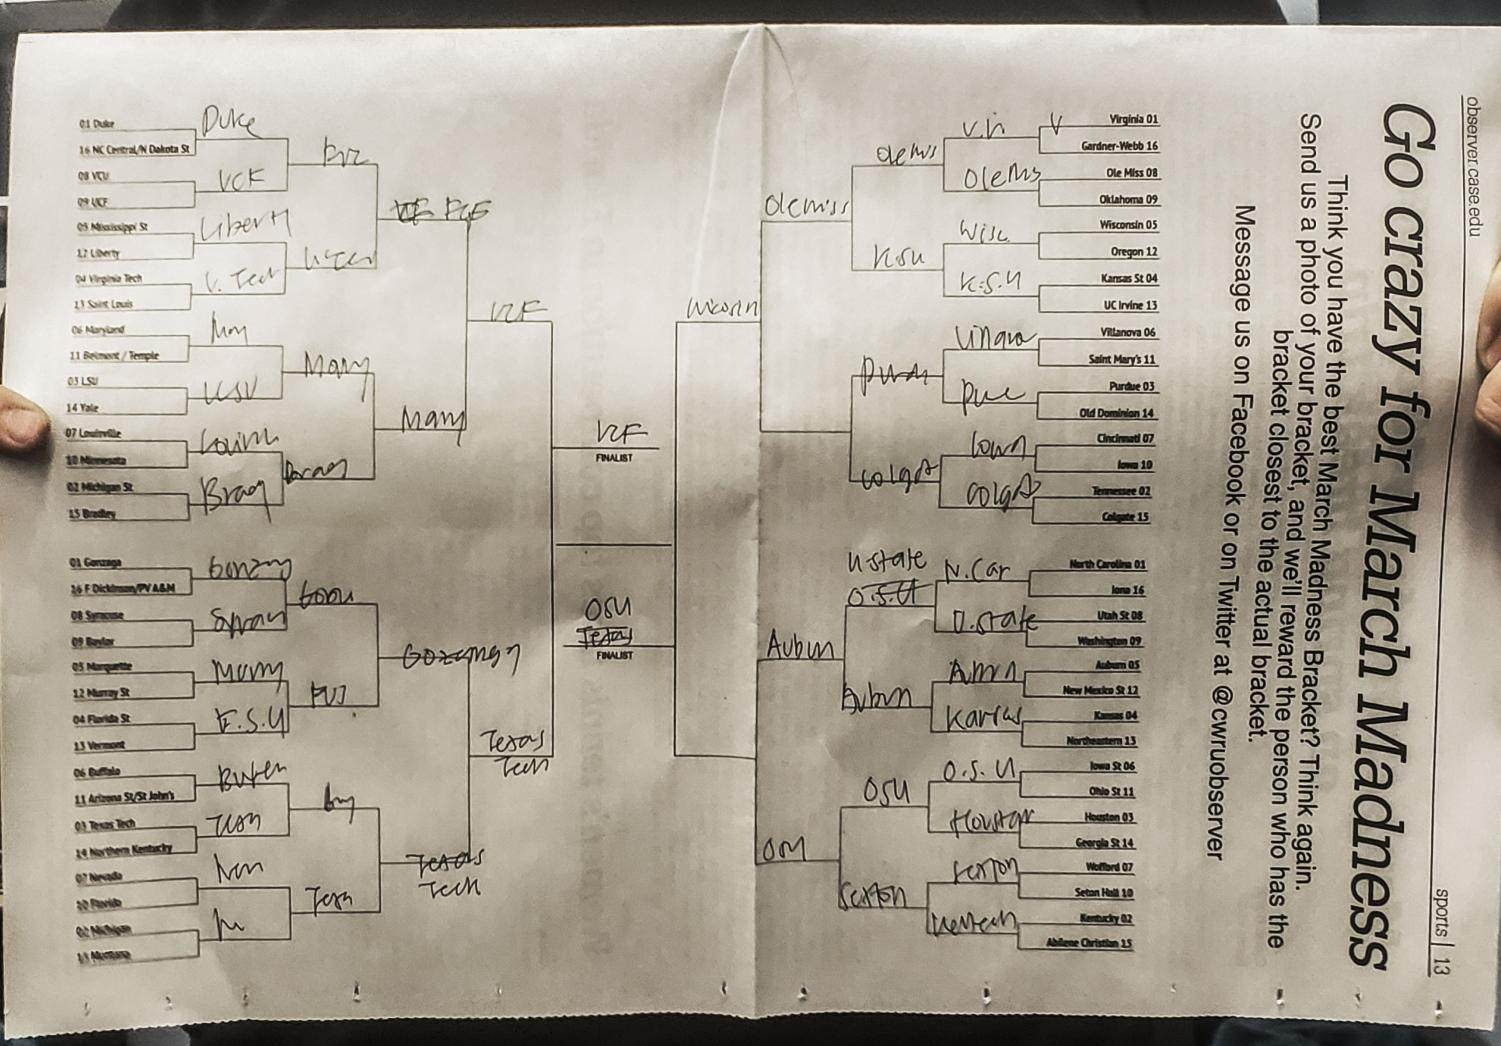 March Madness brackets are a ritual for many. Above is just one of the many brackets that have been created this year.